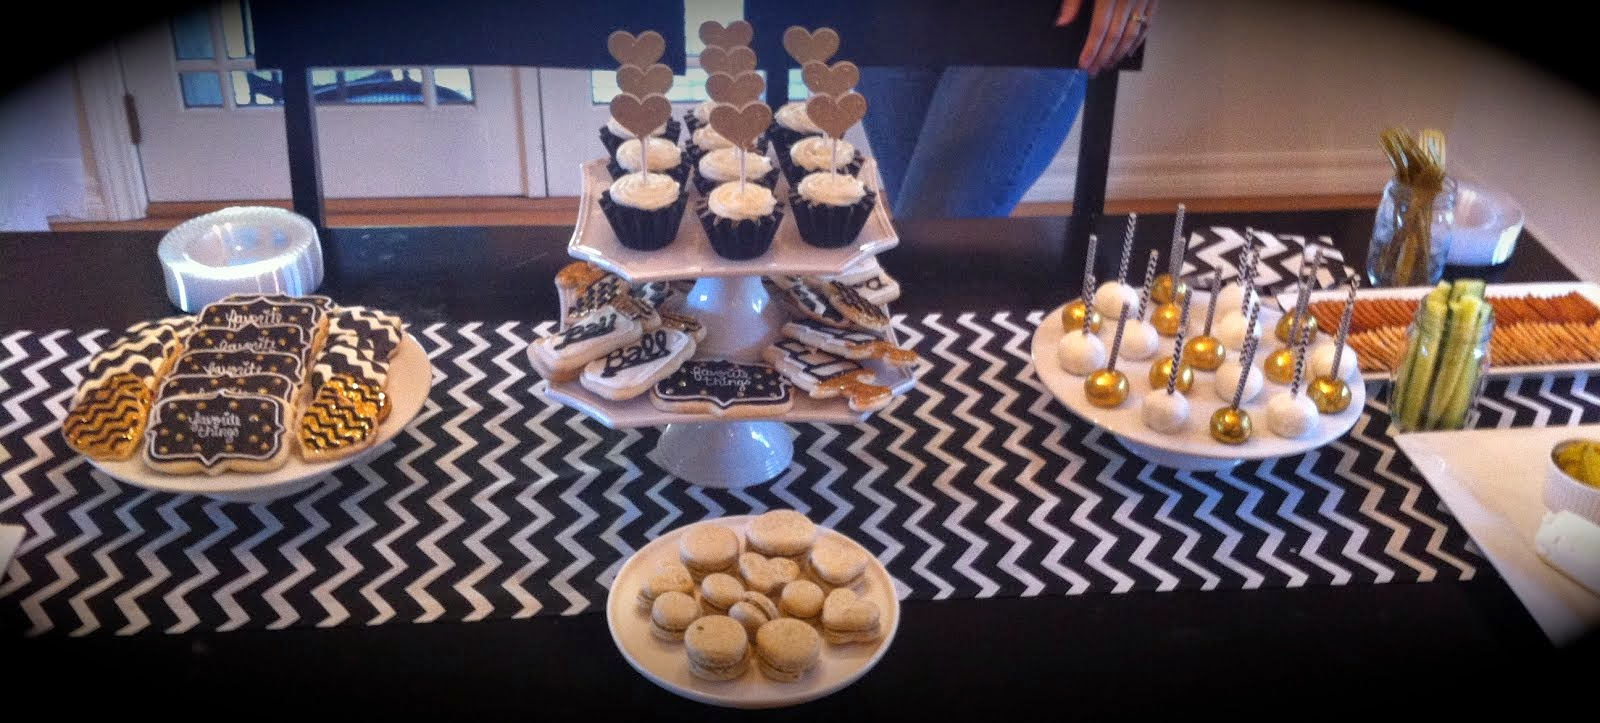 CHEVRON FAVORITE THINGS DESSERT TABLE